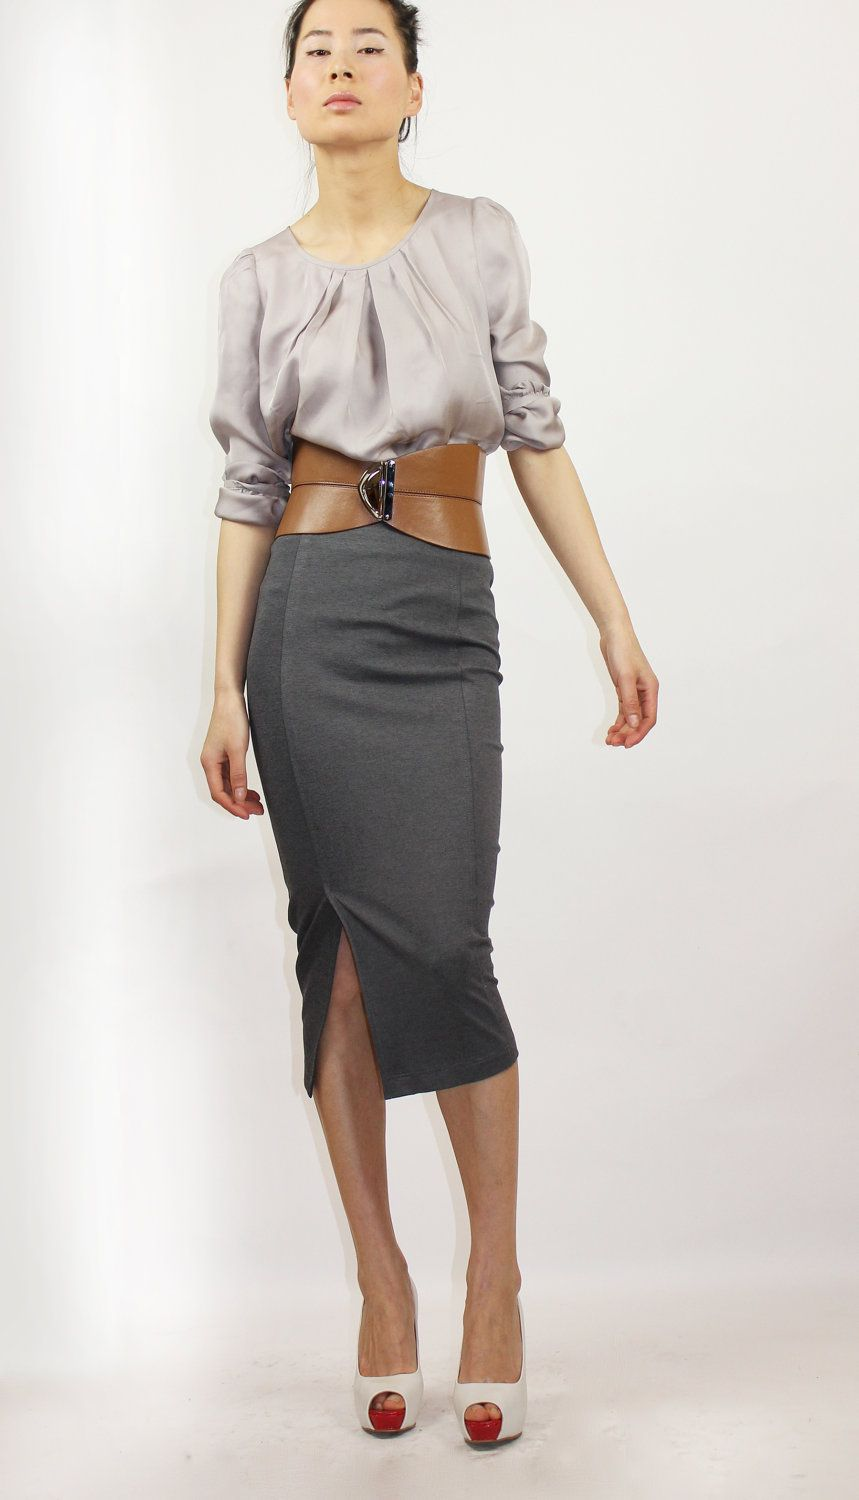 Grey pencil skirt $84 ellalai.etsy.com (love the whole outfit, though - Grey Pencil Skirt $84 Ellalai.etsy.com (love The Whole Outfit